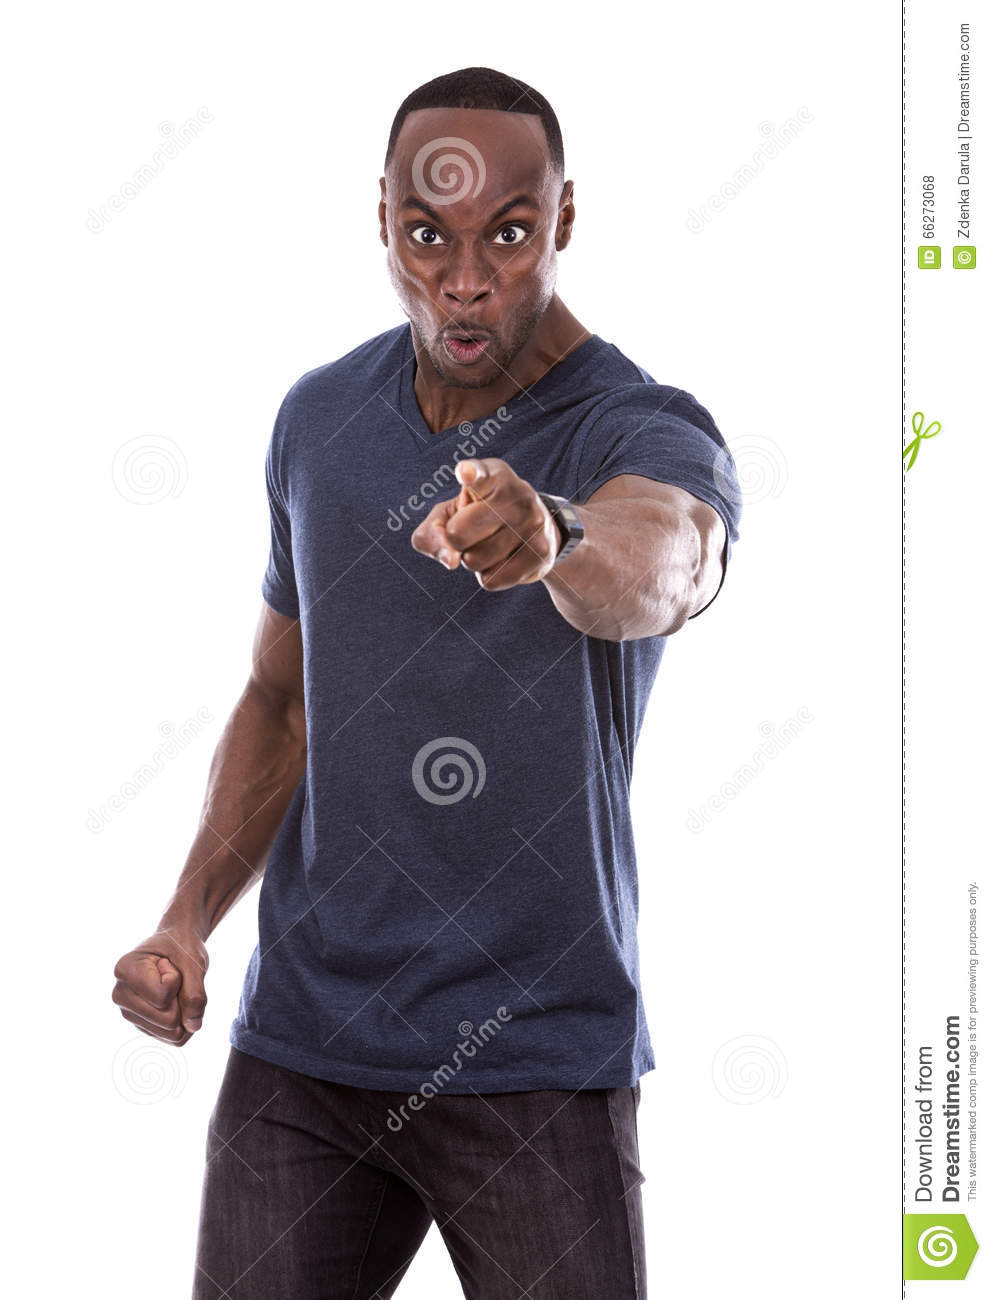 Angry black man stock photo. Image of casual, fighter ...